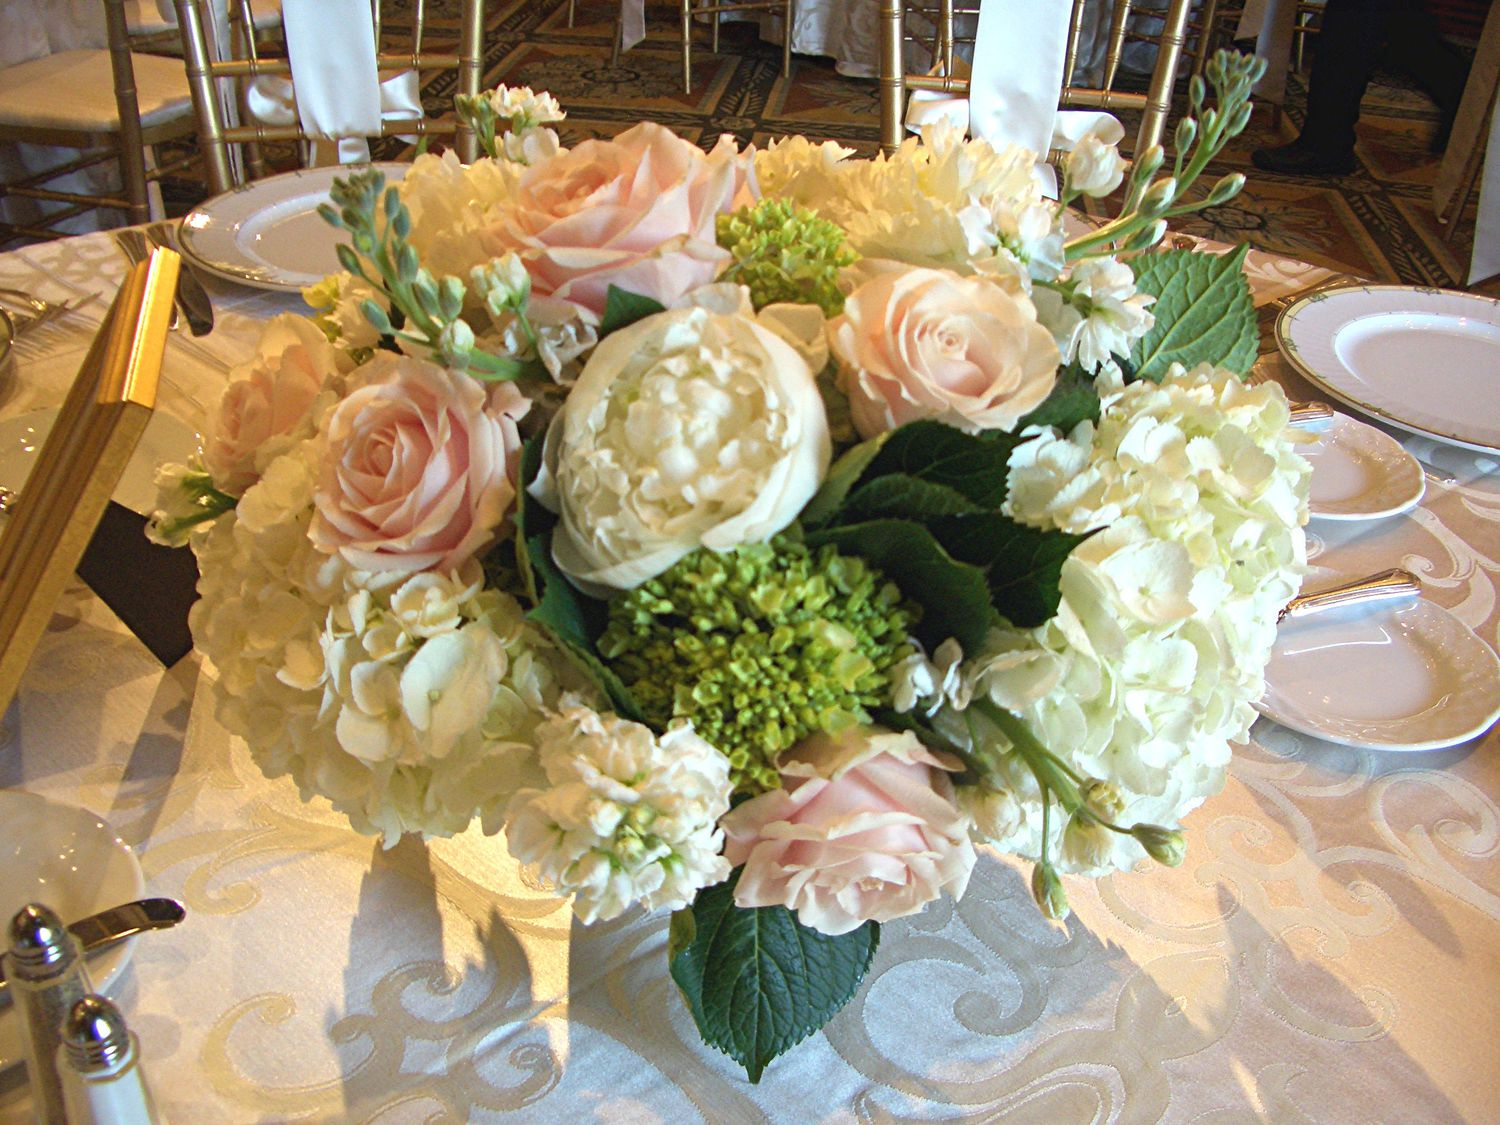 Attrayant Wedding Reception Flowers, Centerpieces, Decorations, Carithers Florist  Atlanta